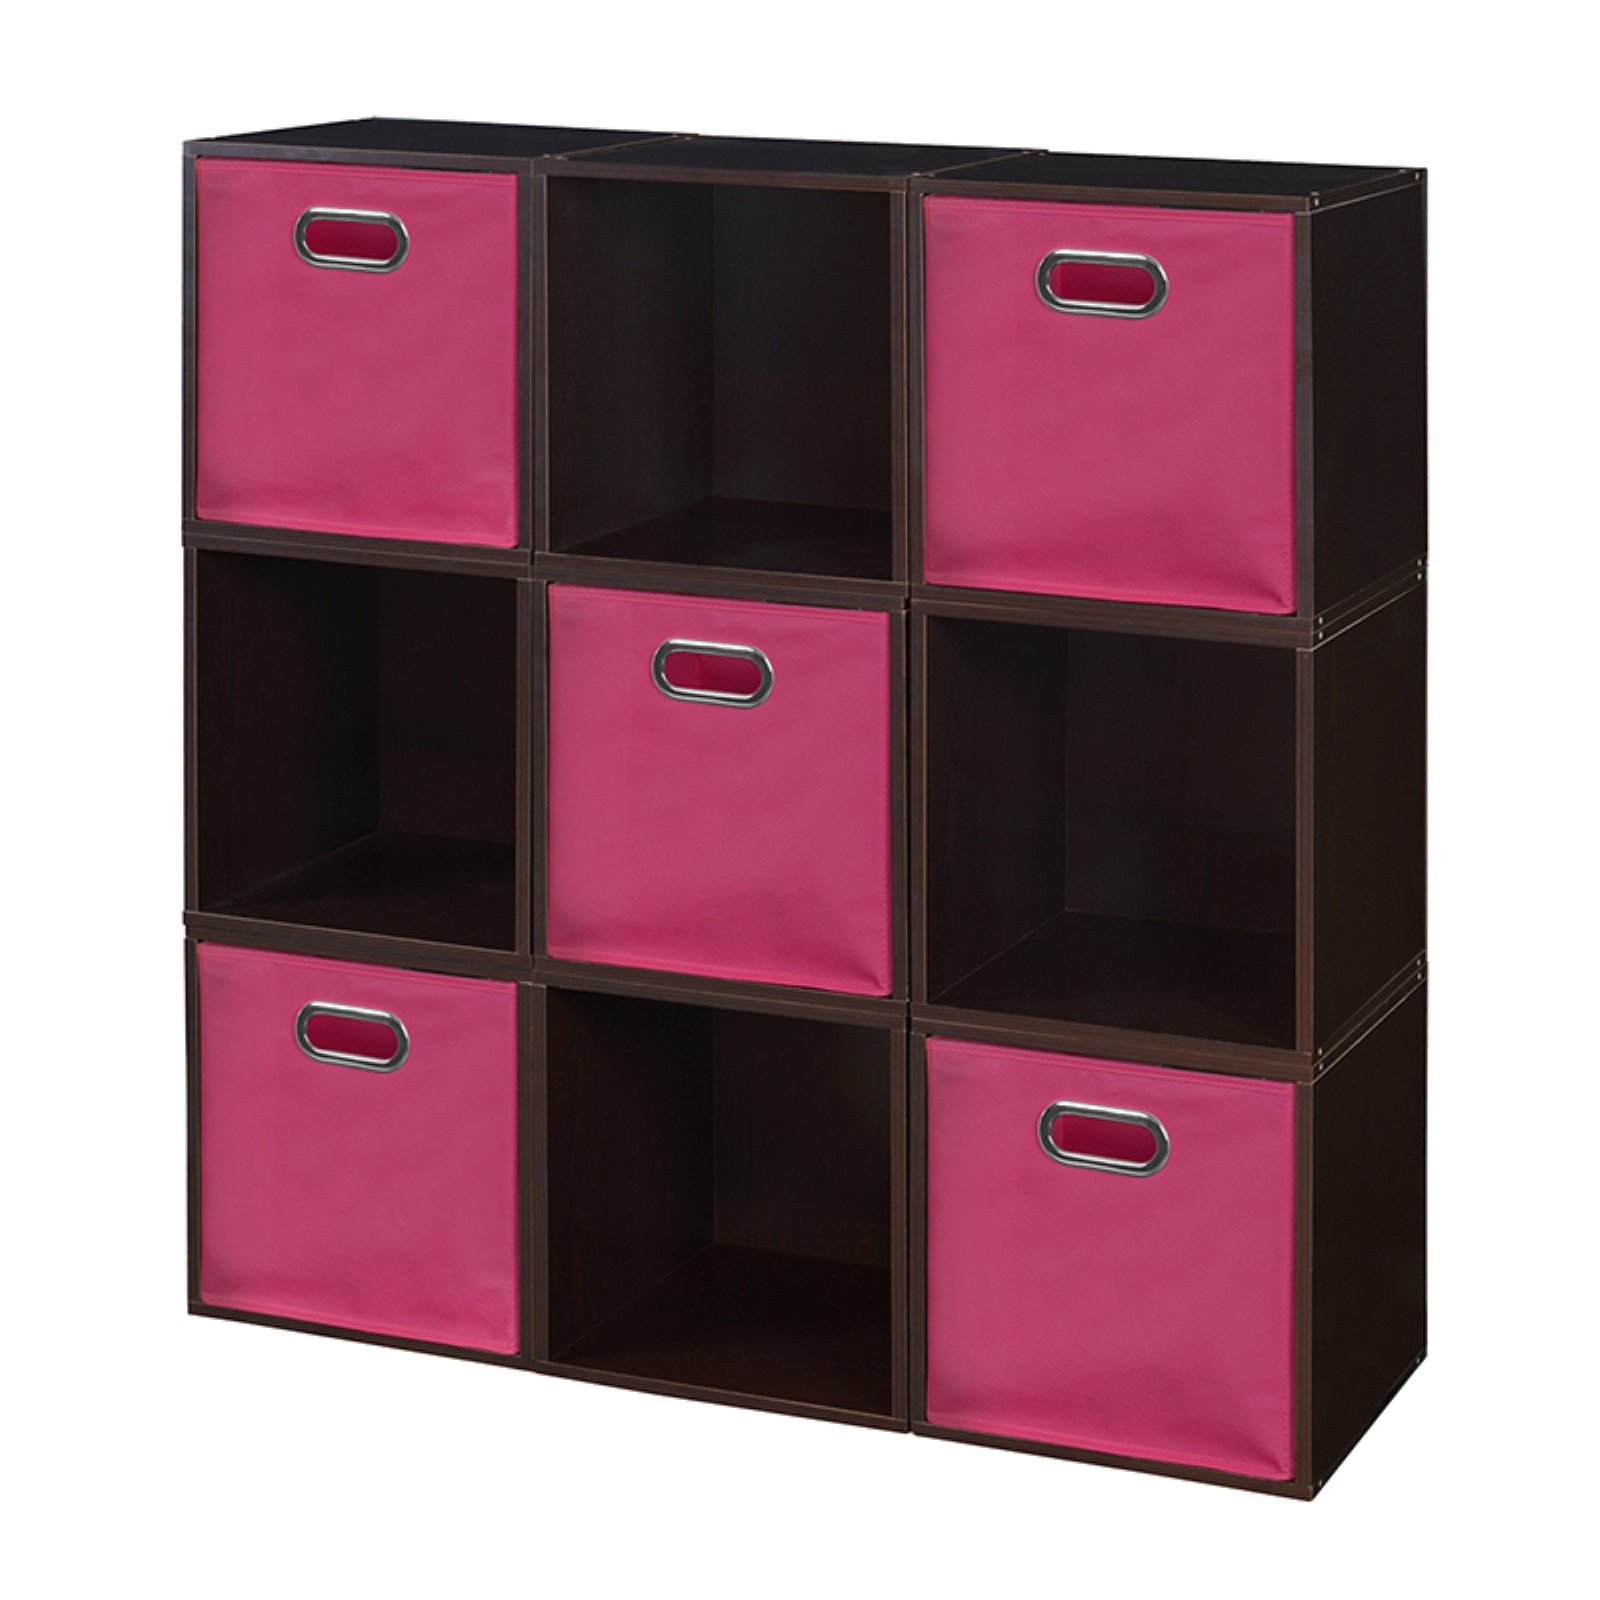 Regency Niche Cubo Storage Set, 9 Cubes and 5 Canvas Bins- Cherry/Natural